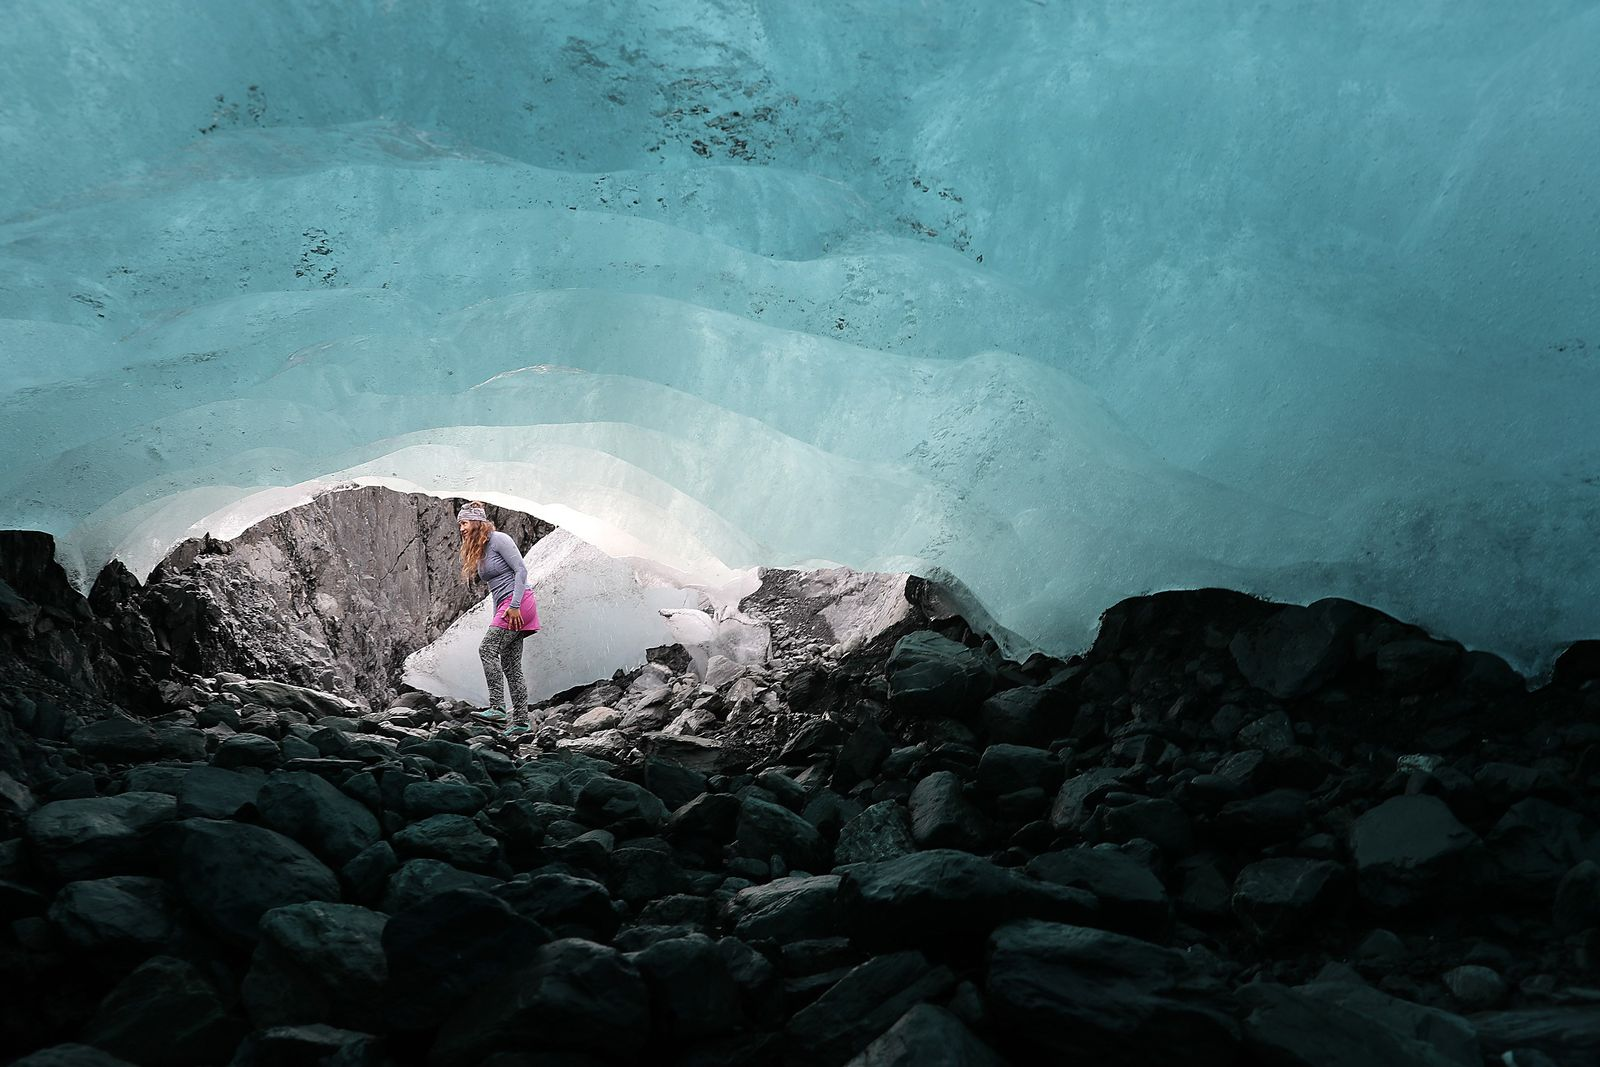 US-SCIENTISTS-STUDY-ICE-MELT-ON-THE-WOLVERINE-GLACIER-IN-ALASKA